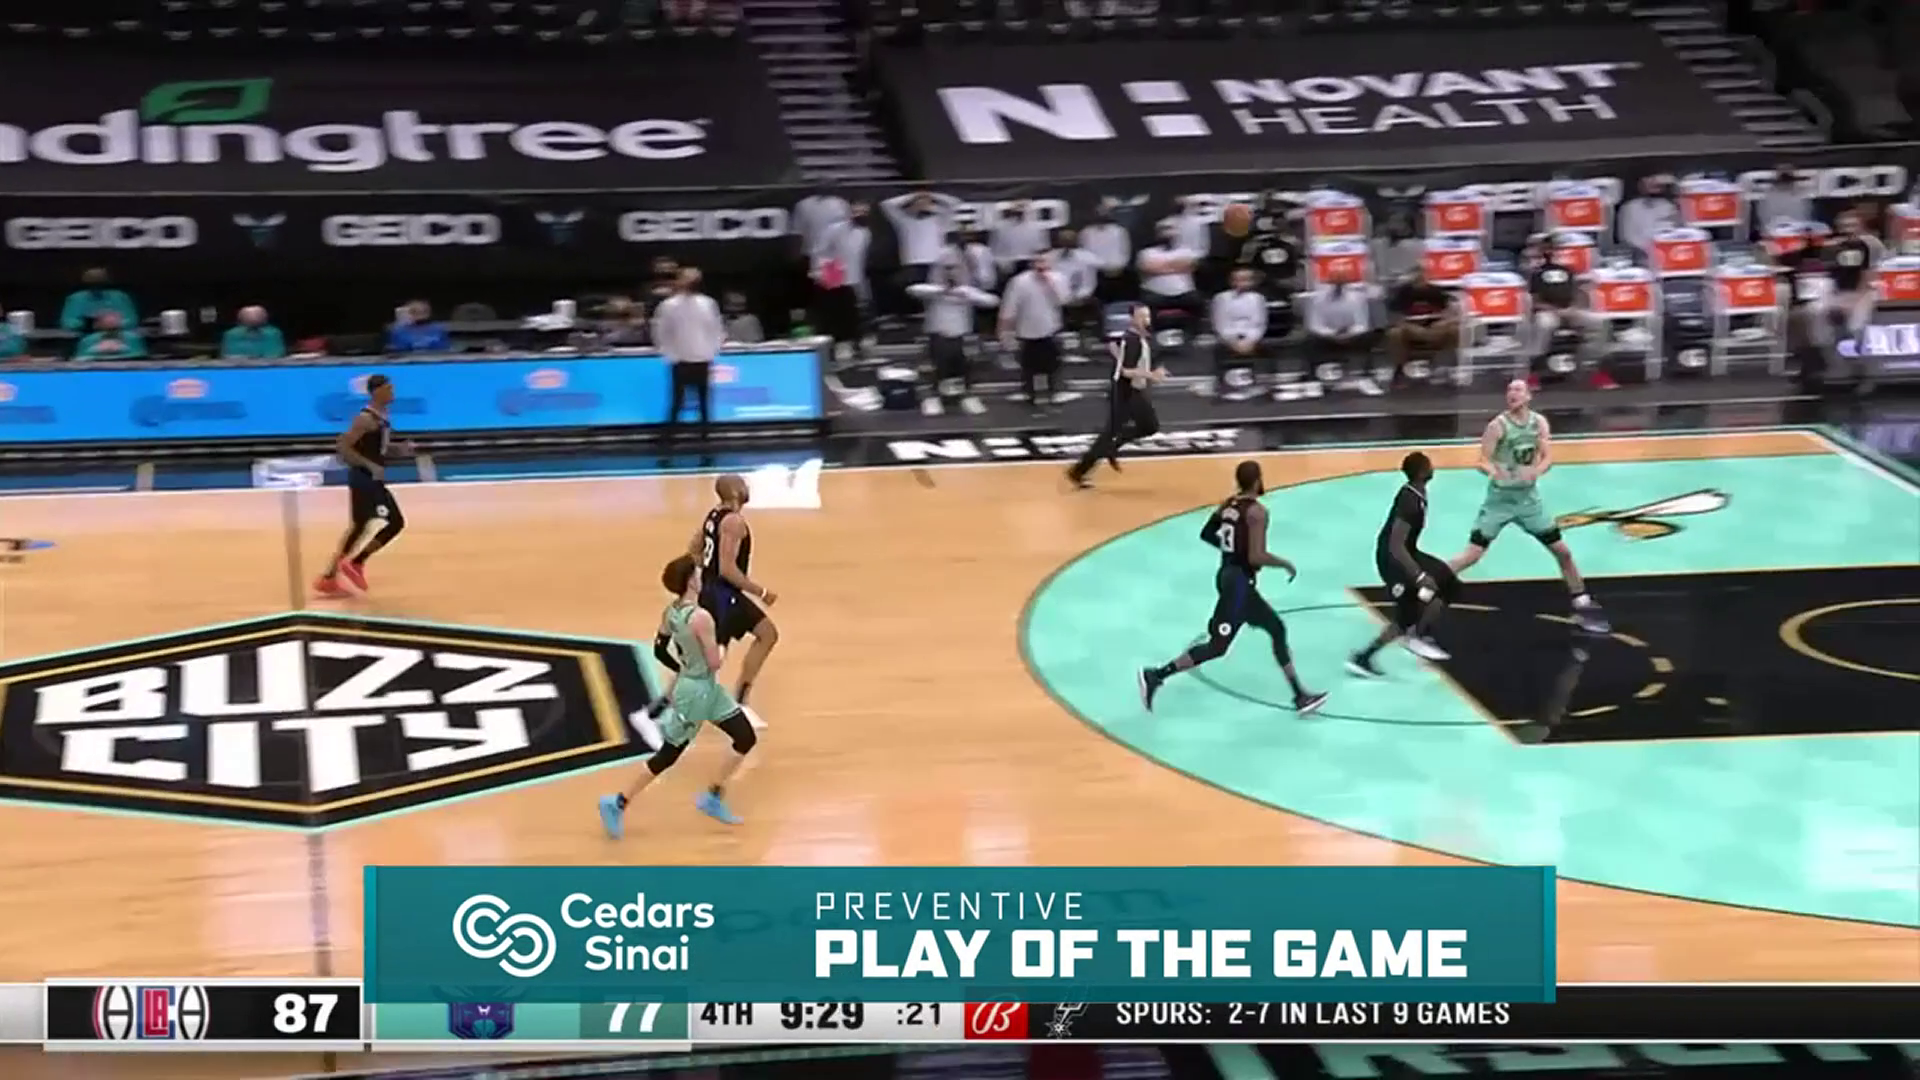 Cedars-Sinai Preventive Play of the Game | Clippers vs Hornets (5.13.21)